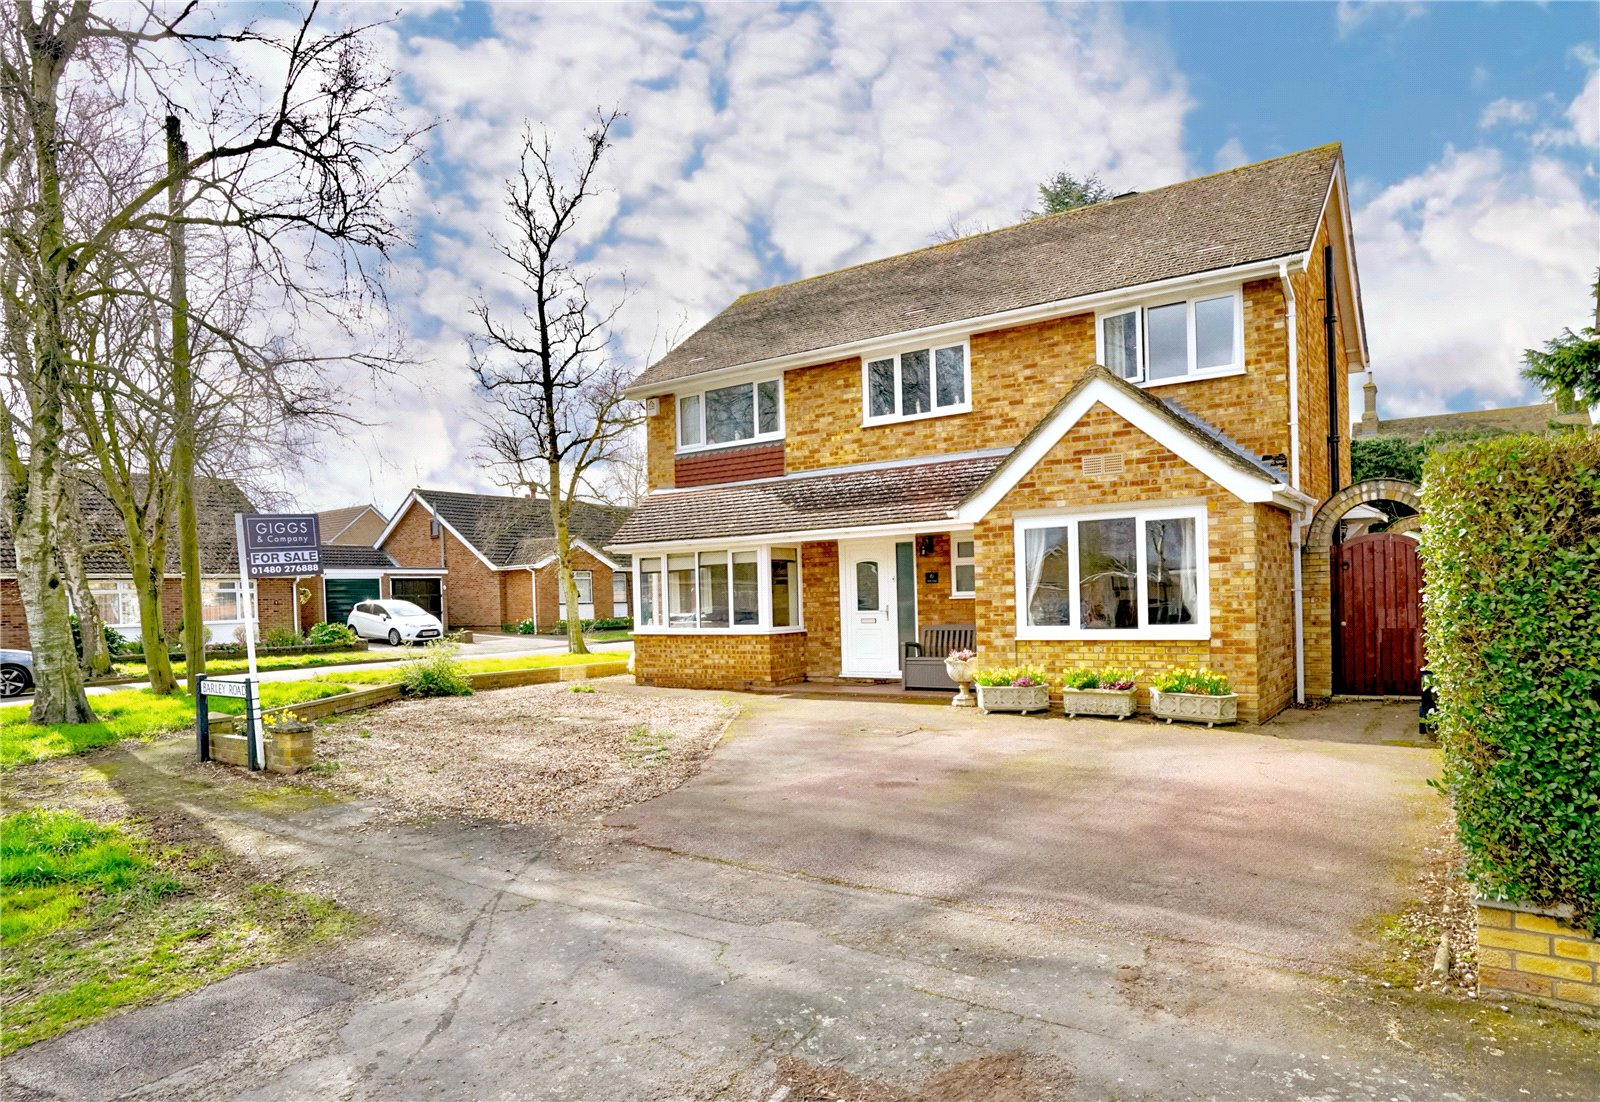 3 bed house for sale in Barley Road, Eaton Socon, PE19